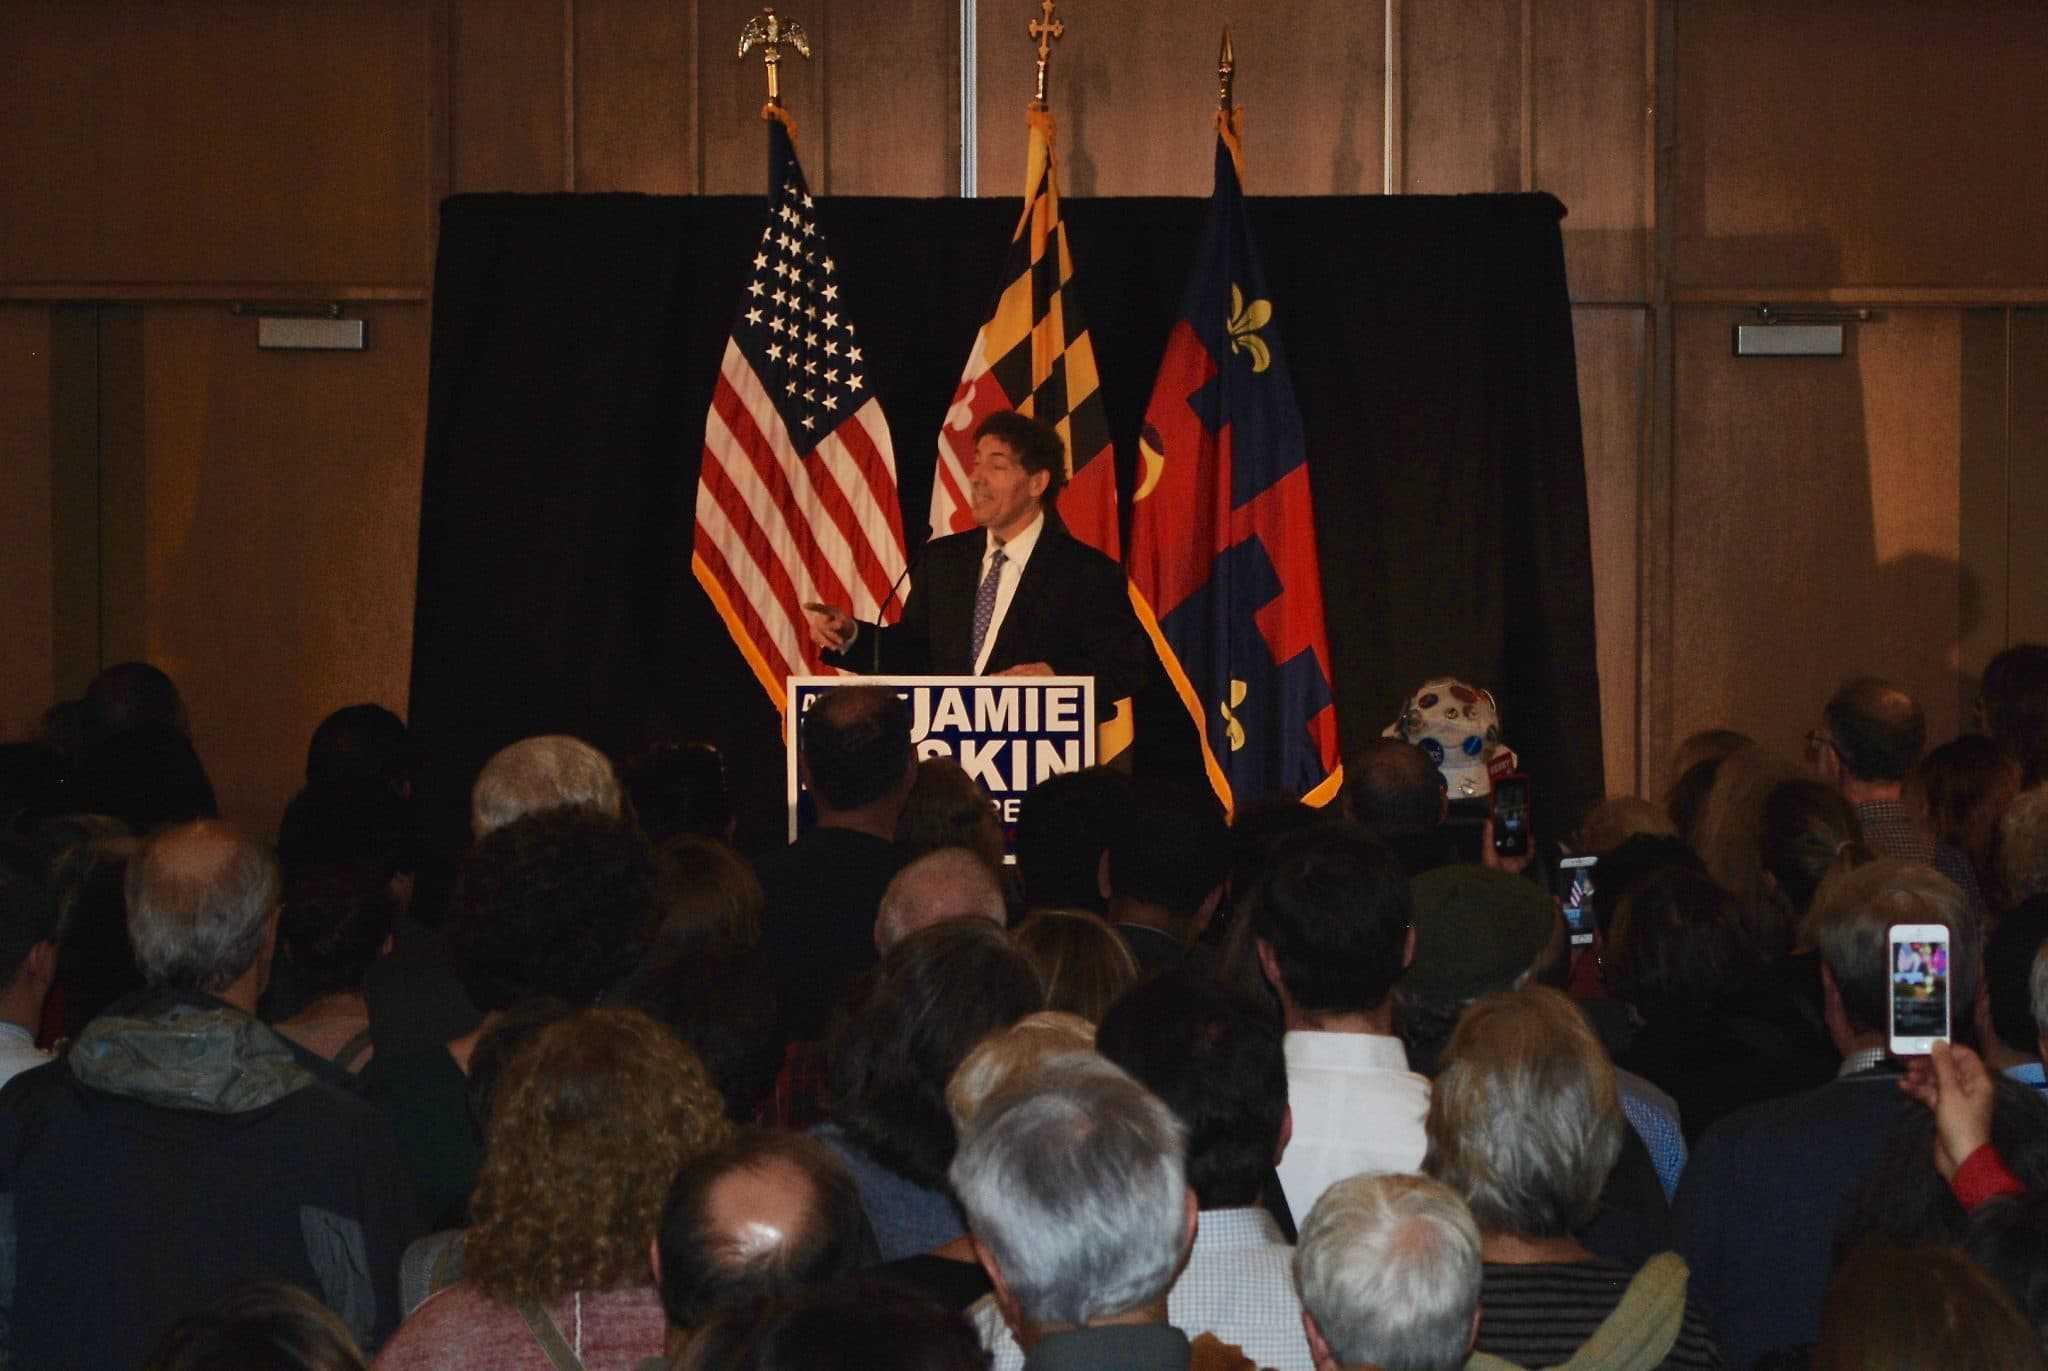 """Raskin rally held in Silver Spring - U.S. Rep.-elect Jamie Raskin (D-District 8) spoke to an overflow crowd Nov. 30 at the Silver Spring Civic Building. Billed as a """"political strategy session"""" as well as a fundraiser, the event also featured U.S. Rep.-elects Pramila Jayapal (D-Washington) and Donald McEachin (D-Virginia) and was headlined by Massachusetts Sen. Elizabeth Warren. (Photo by Mike Diegel)"""